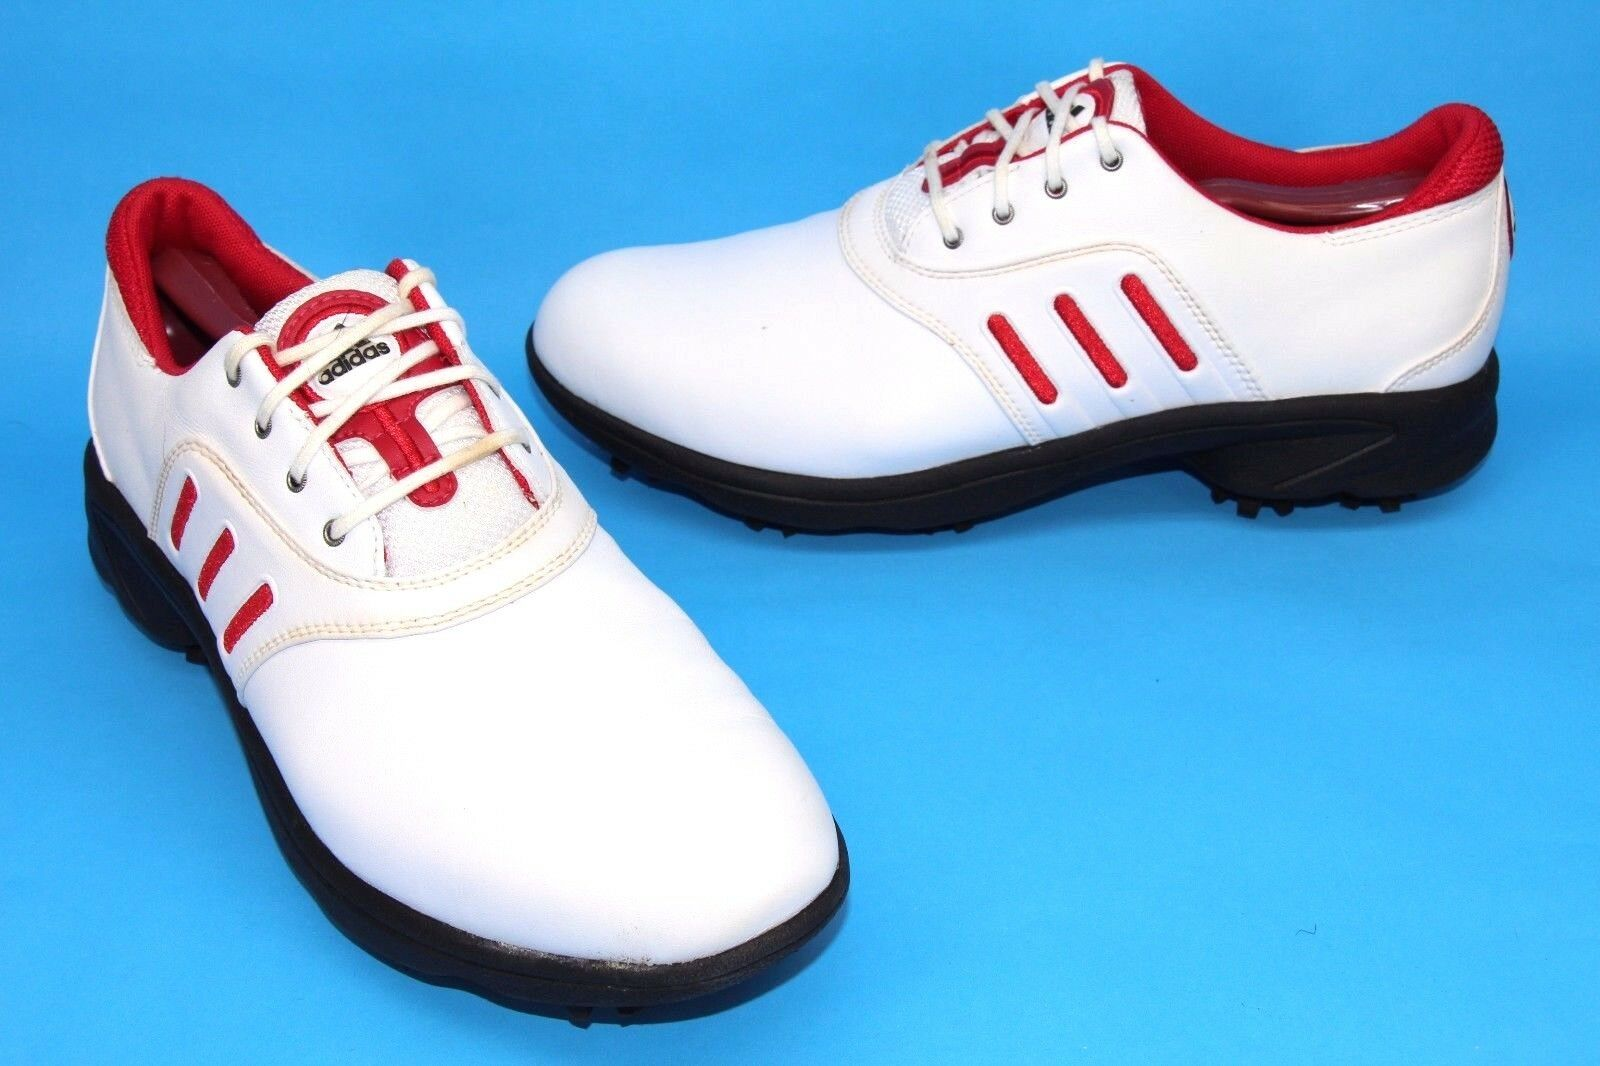 Femme Adidas ComfortStripe White & amp;Chaussures de golf à crampons rouges taille 9,5 Style103453